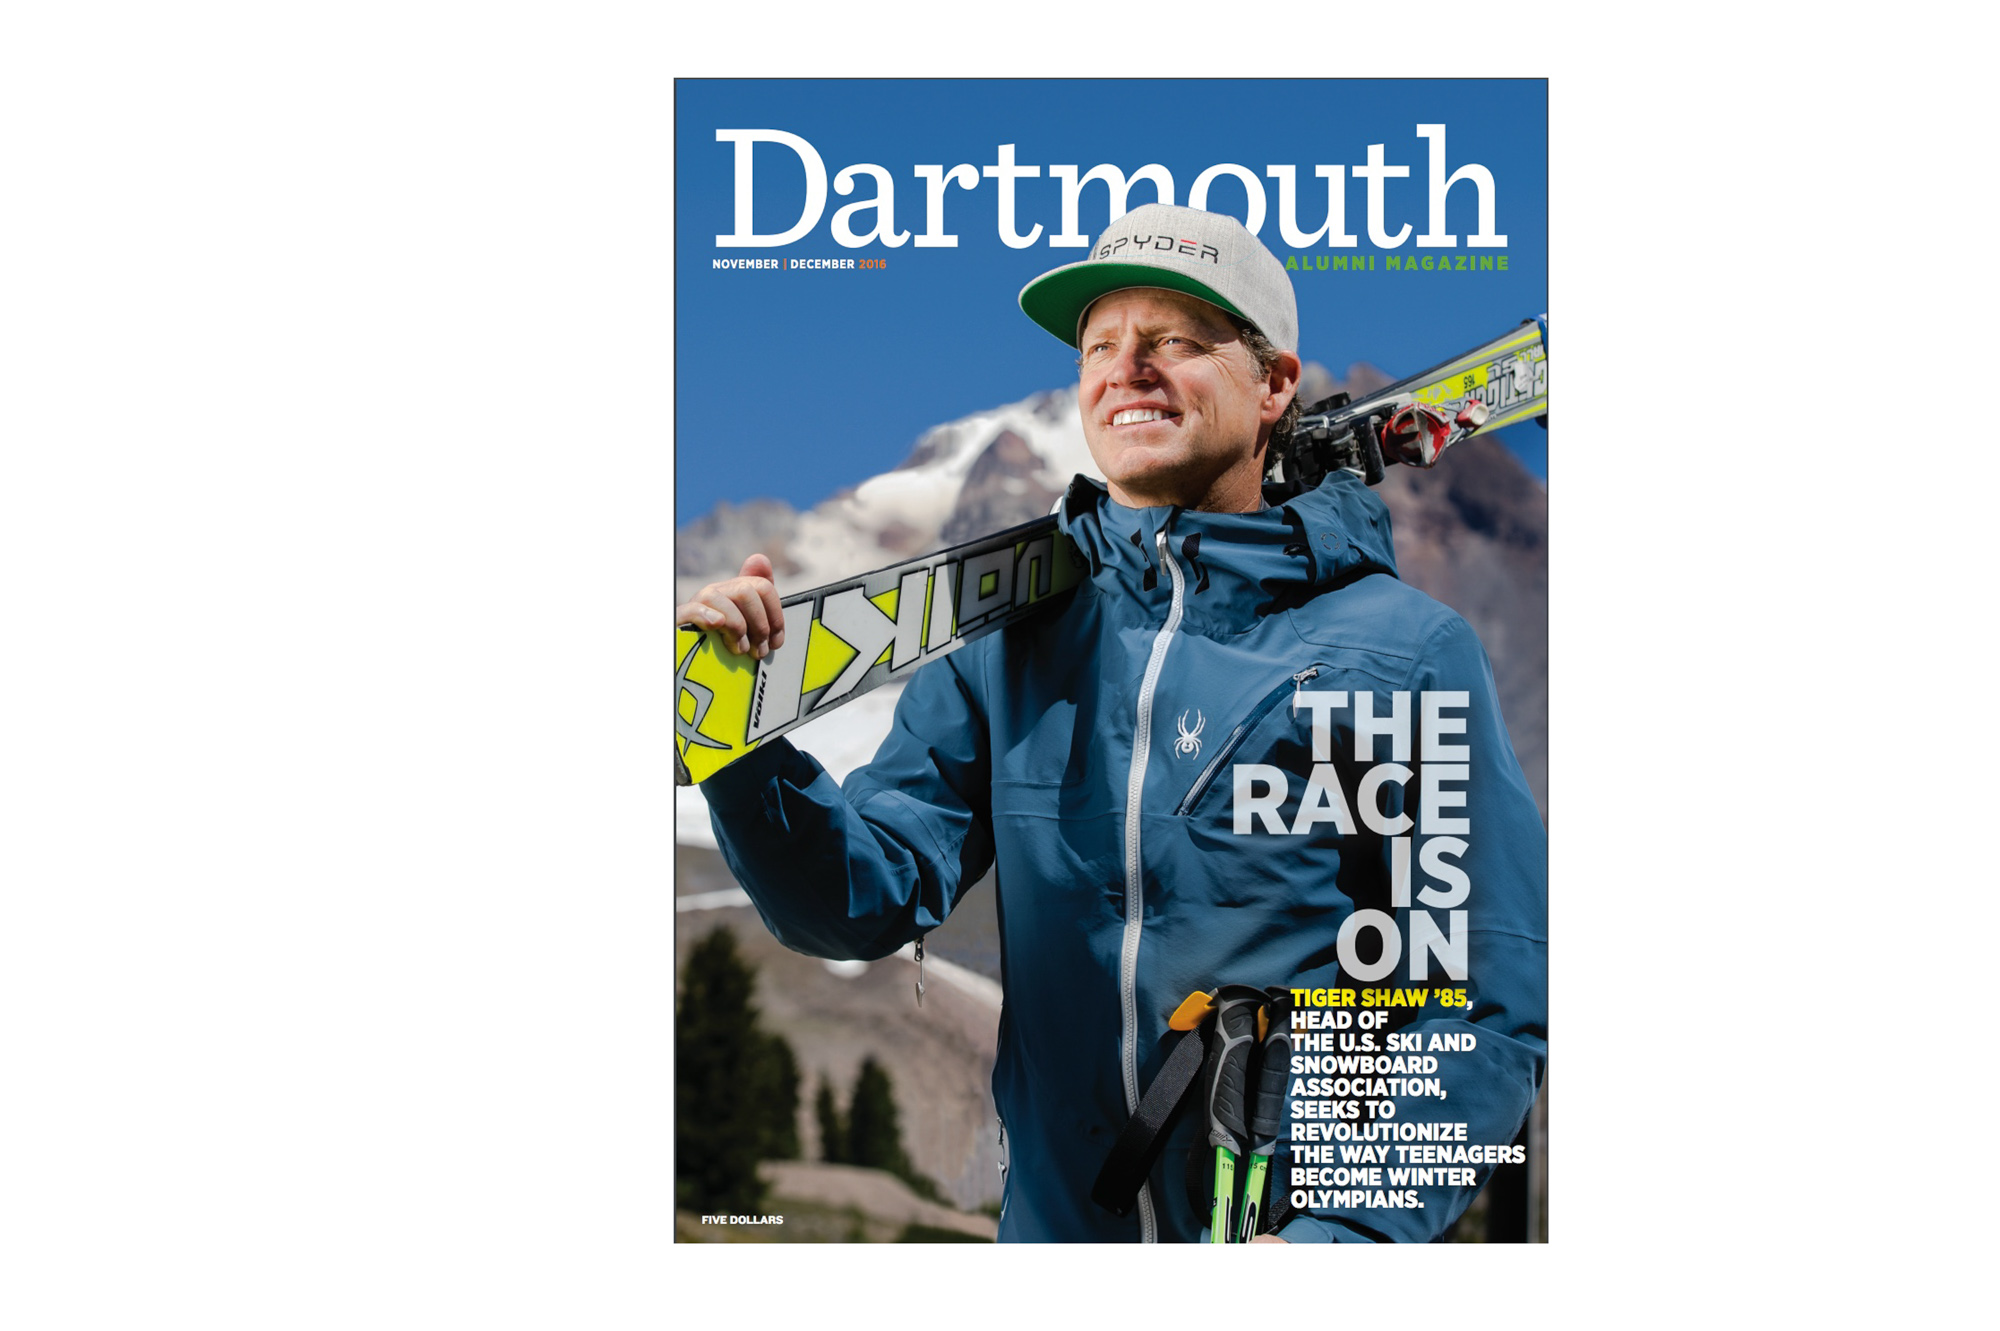 dartmouth-alumni-magazine-tiger-shaw-us-ski-coach.JPG